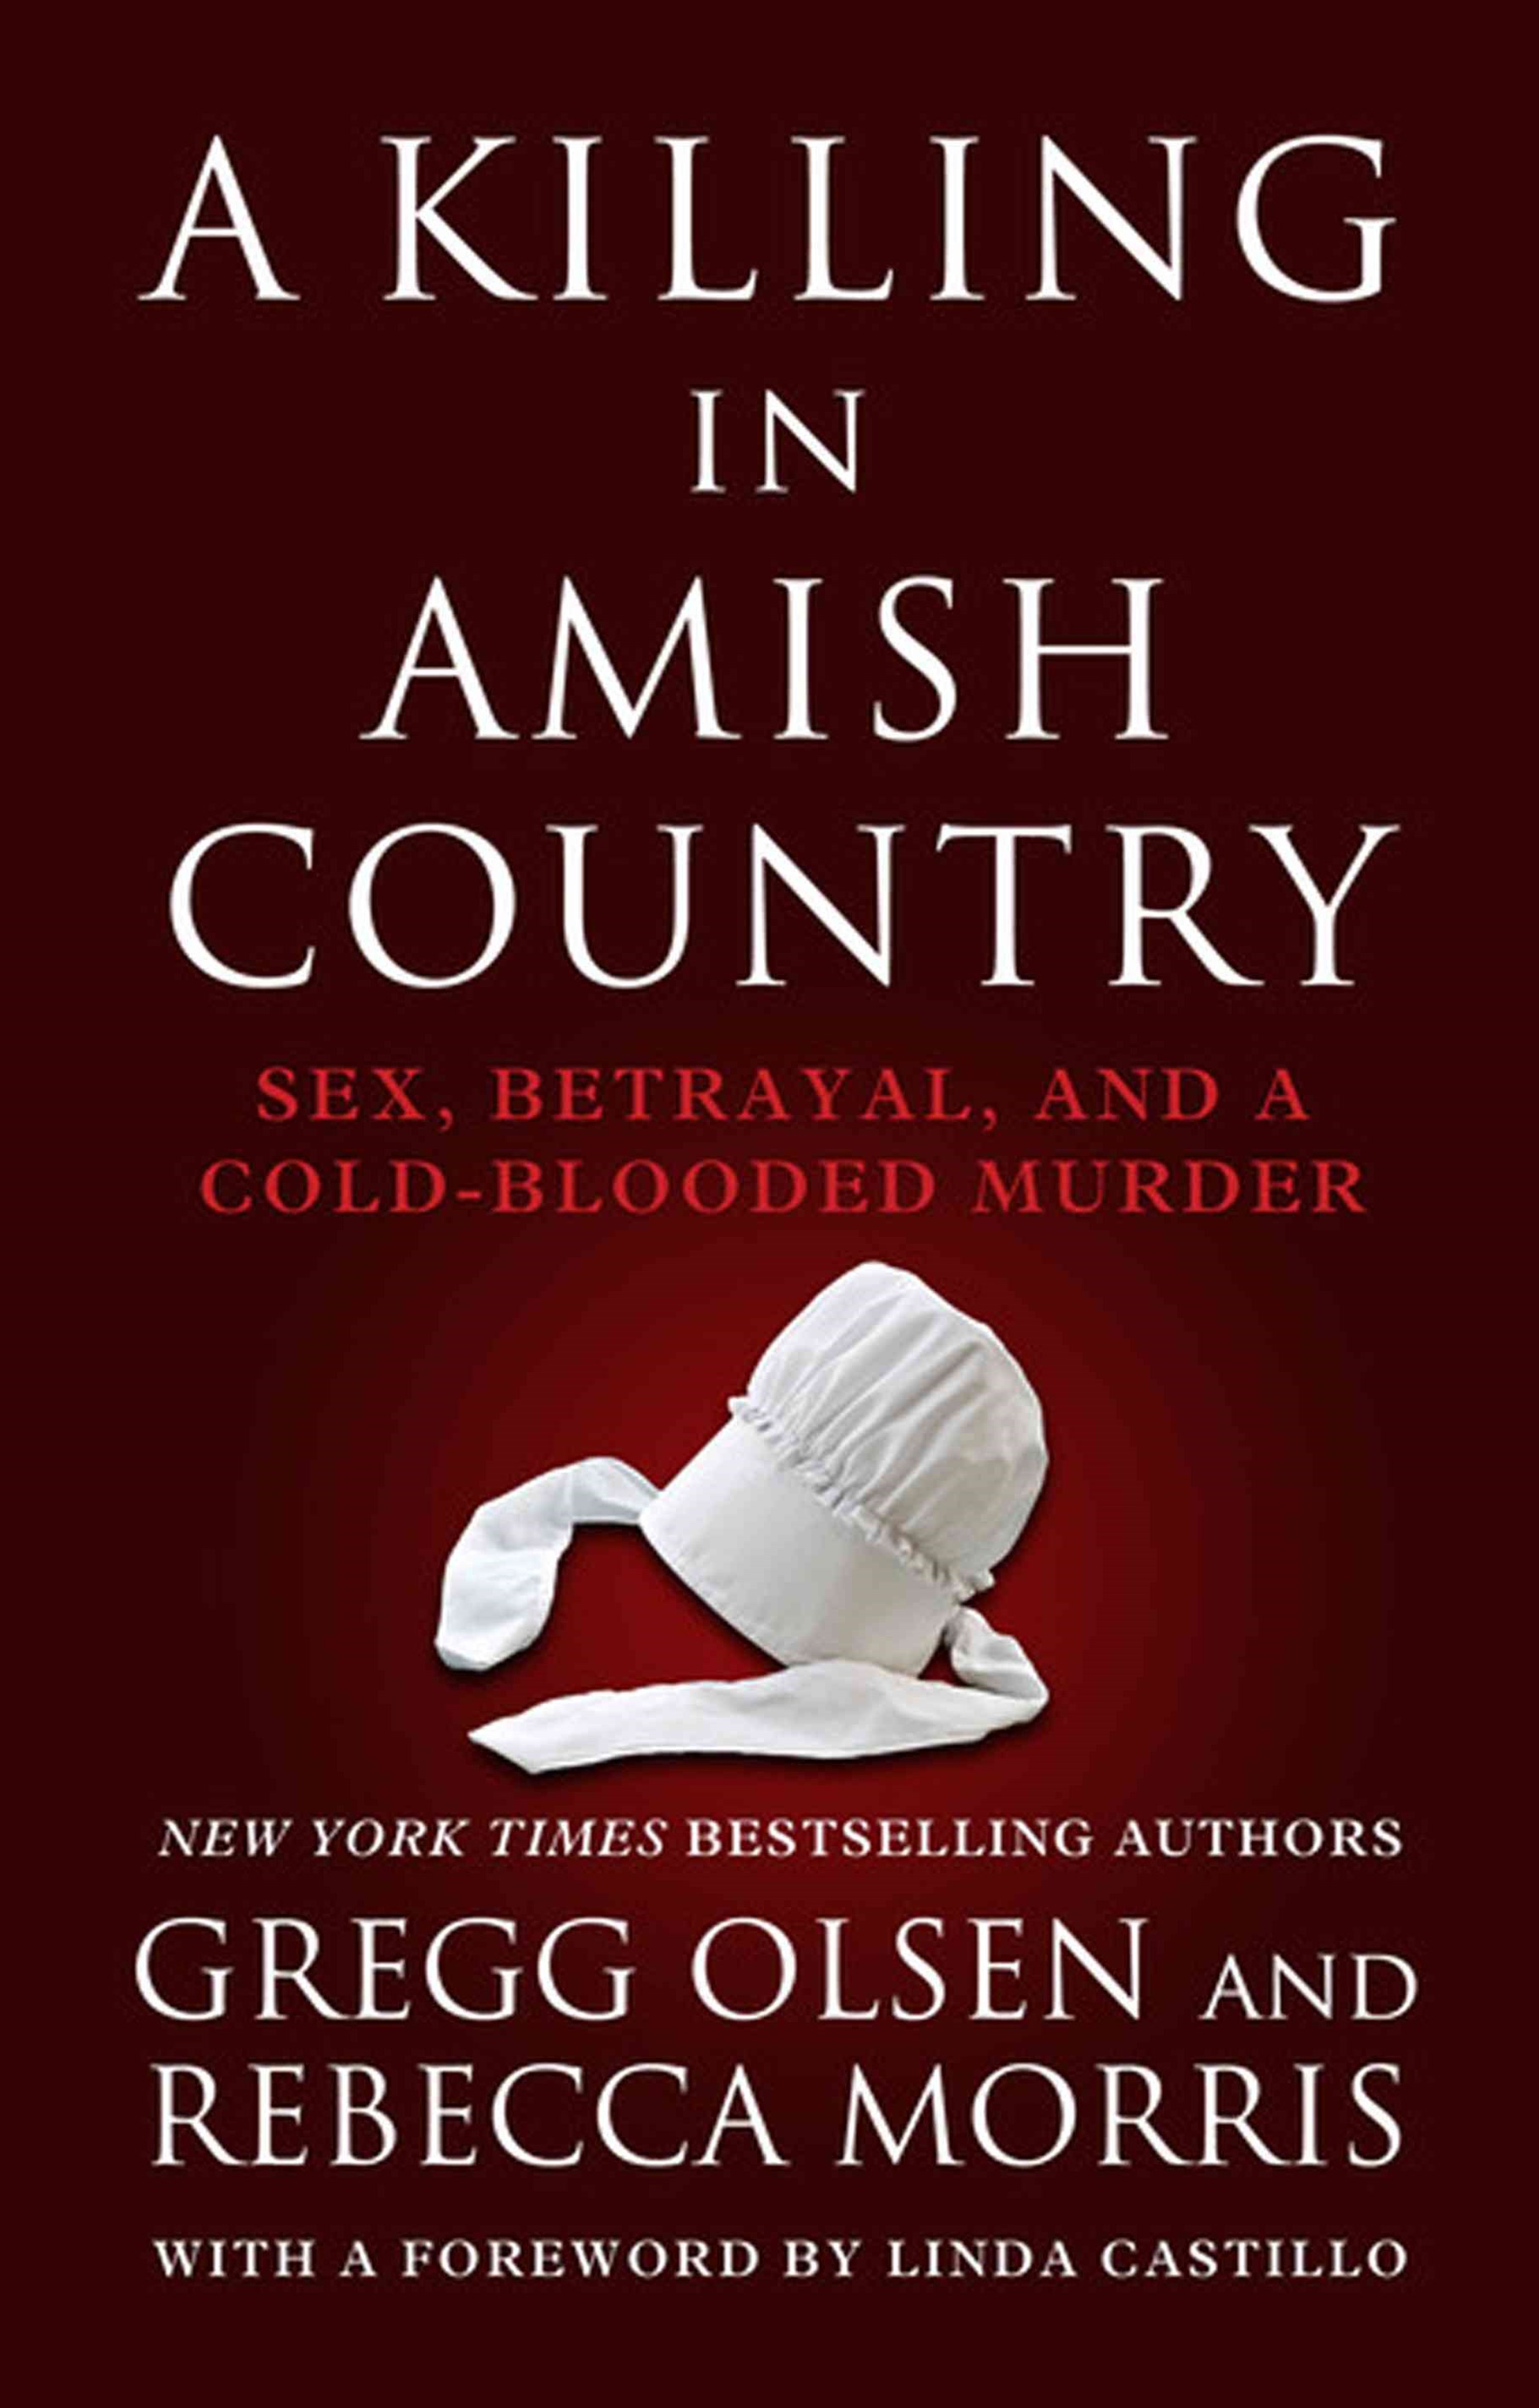 A Killing in Amish Country